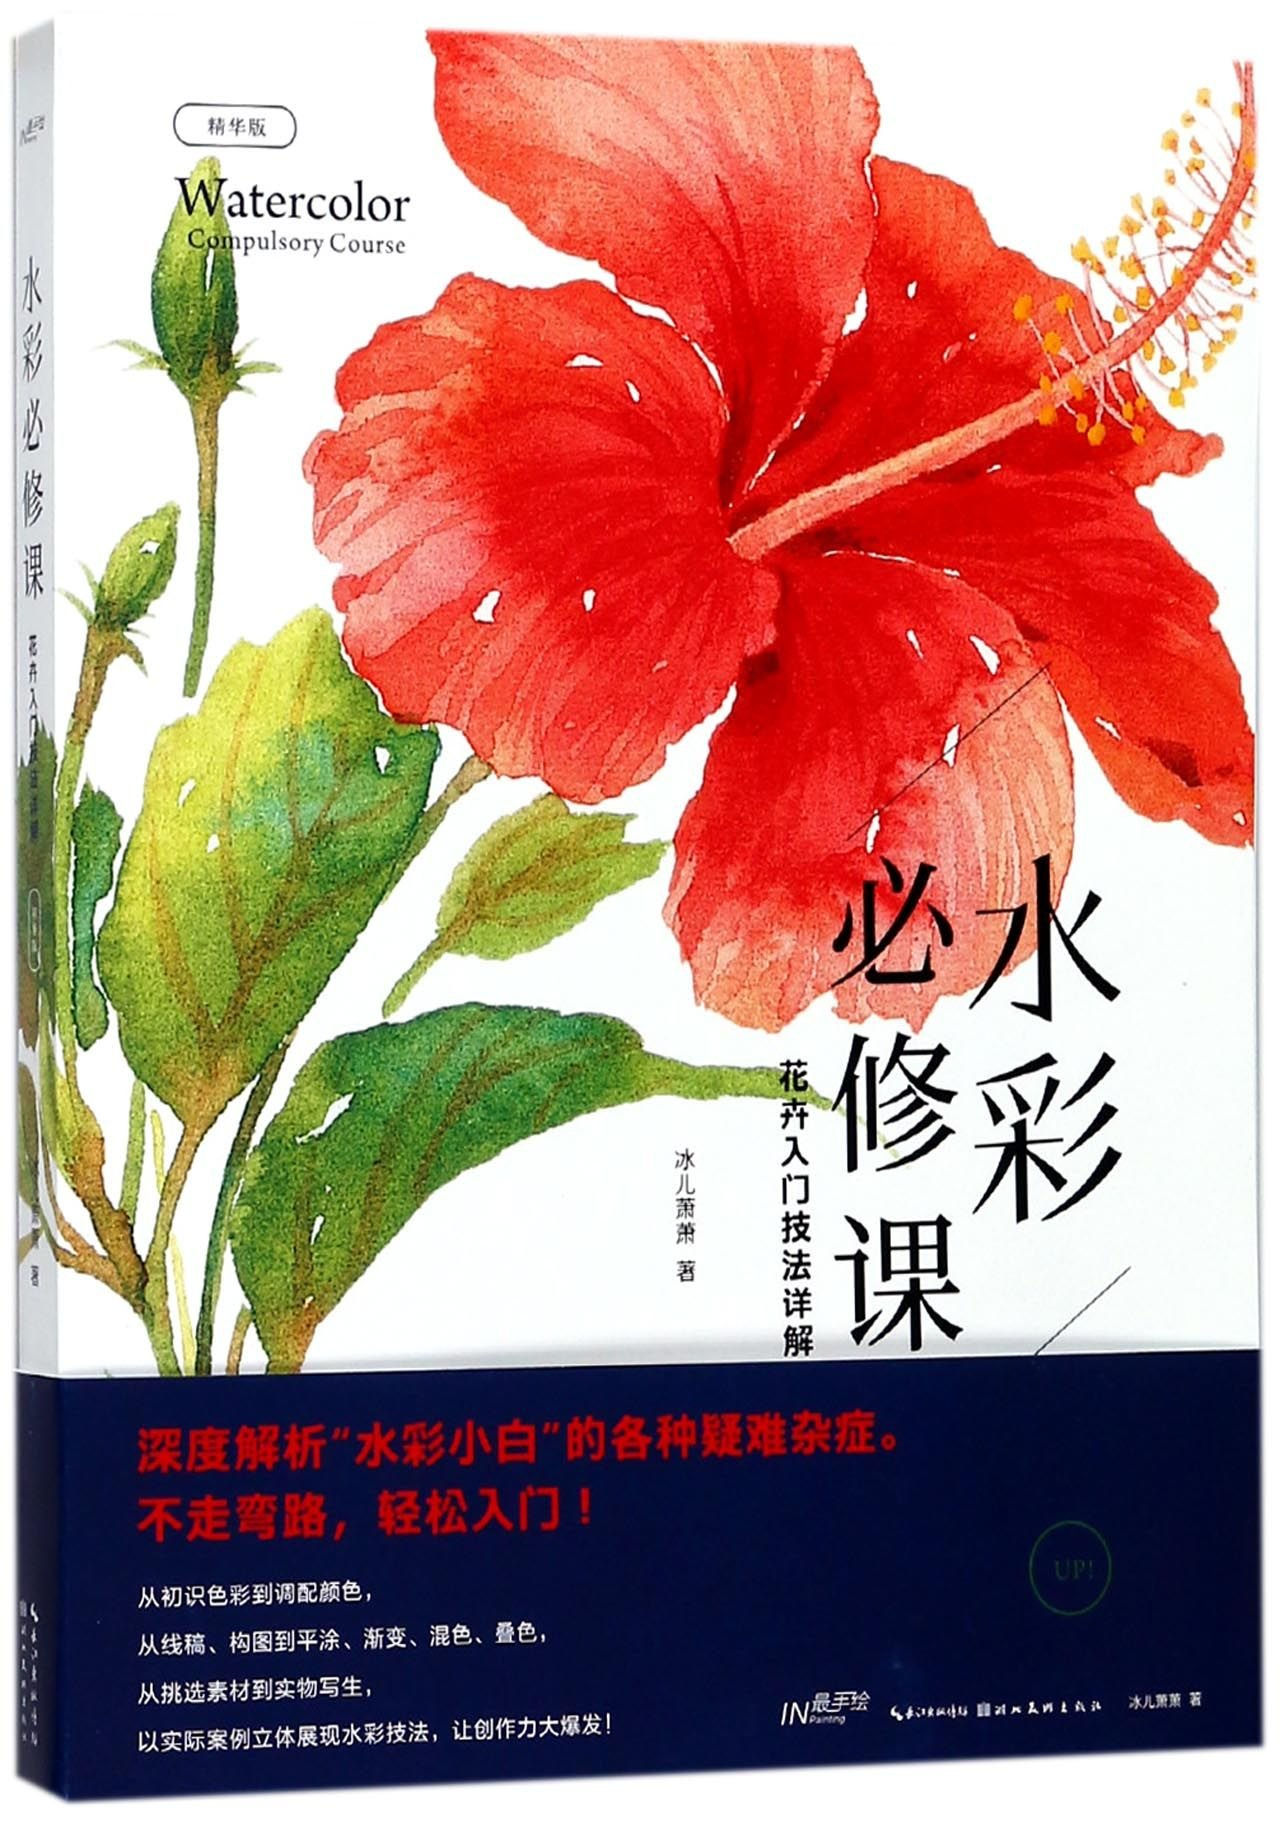 Watercolor Compulsory Course (Chinese Edition) pdf